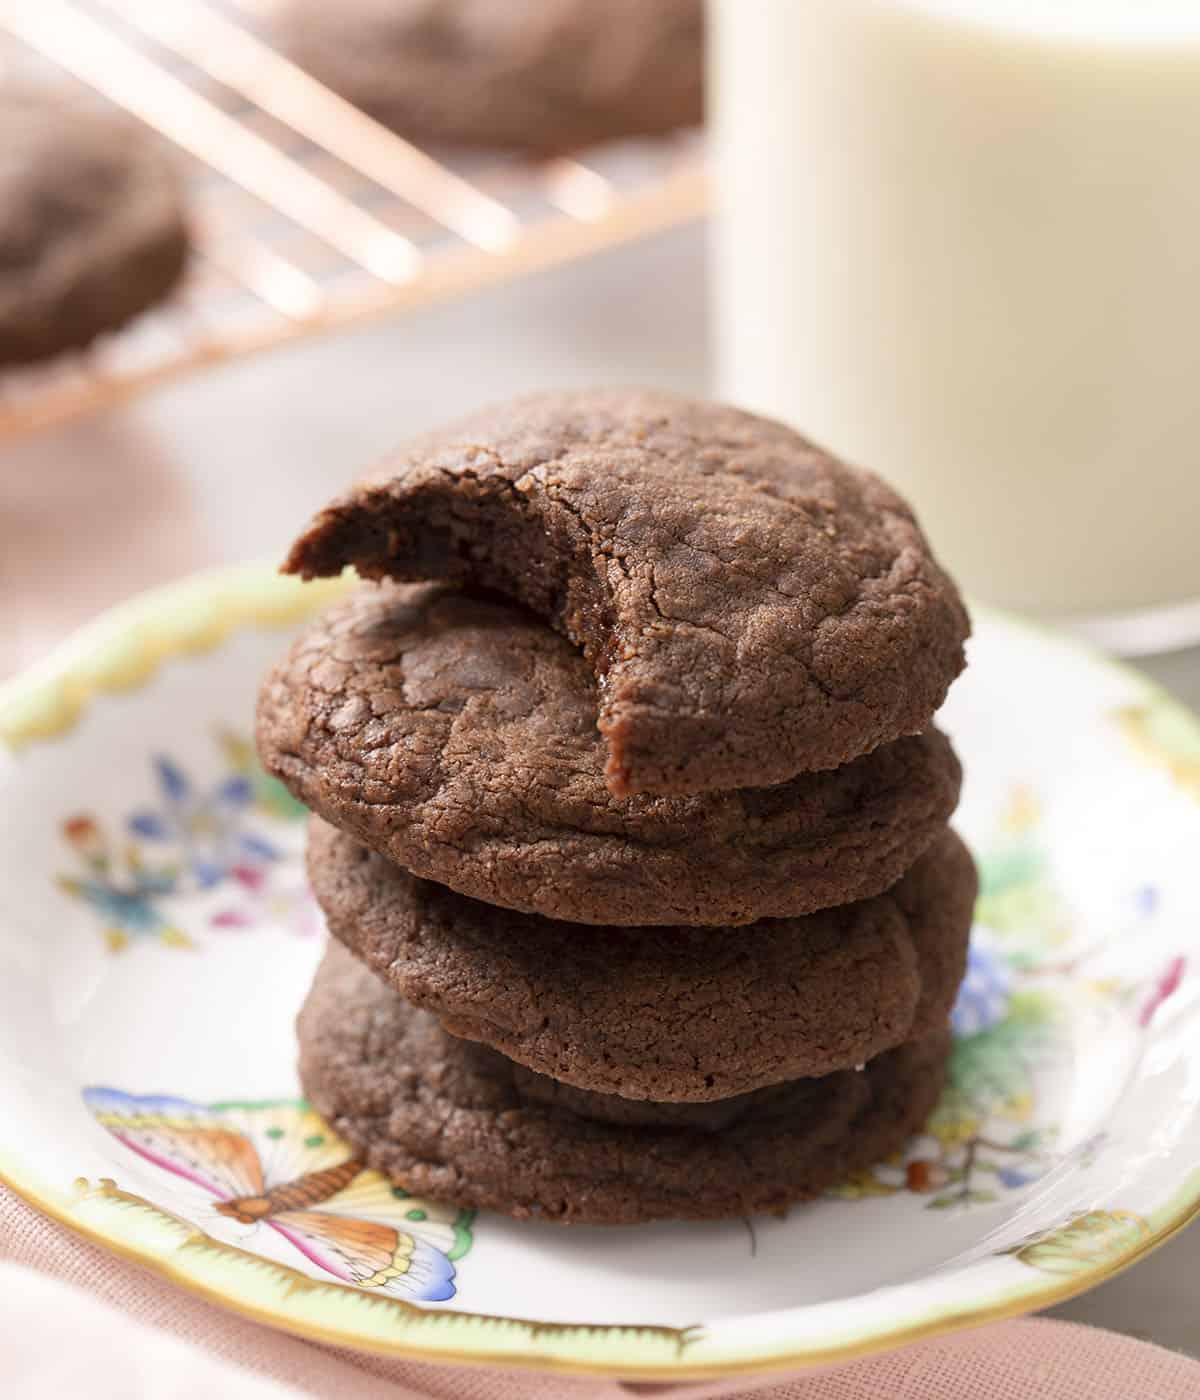 A stack of nutella cookies on a plate one with a bite out